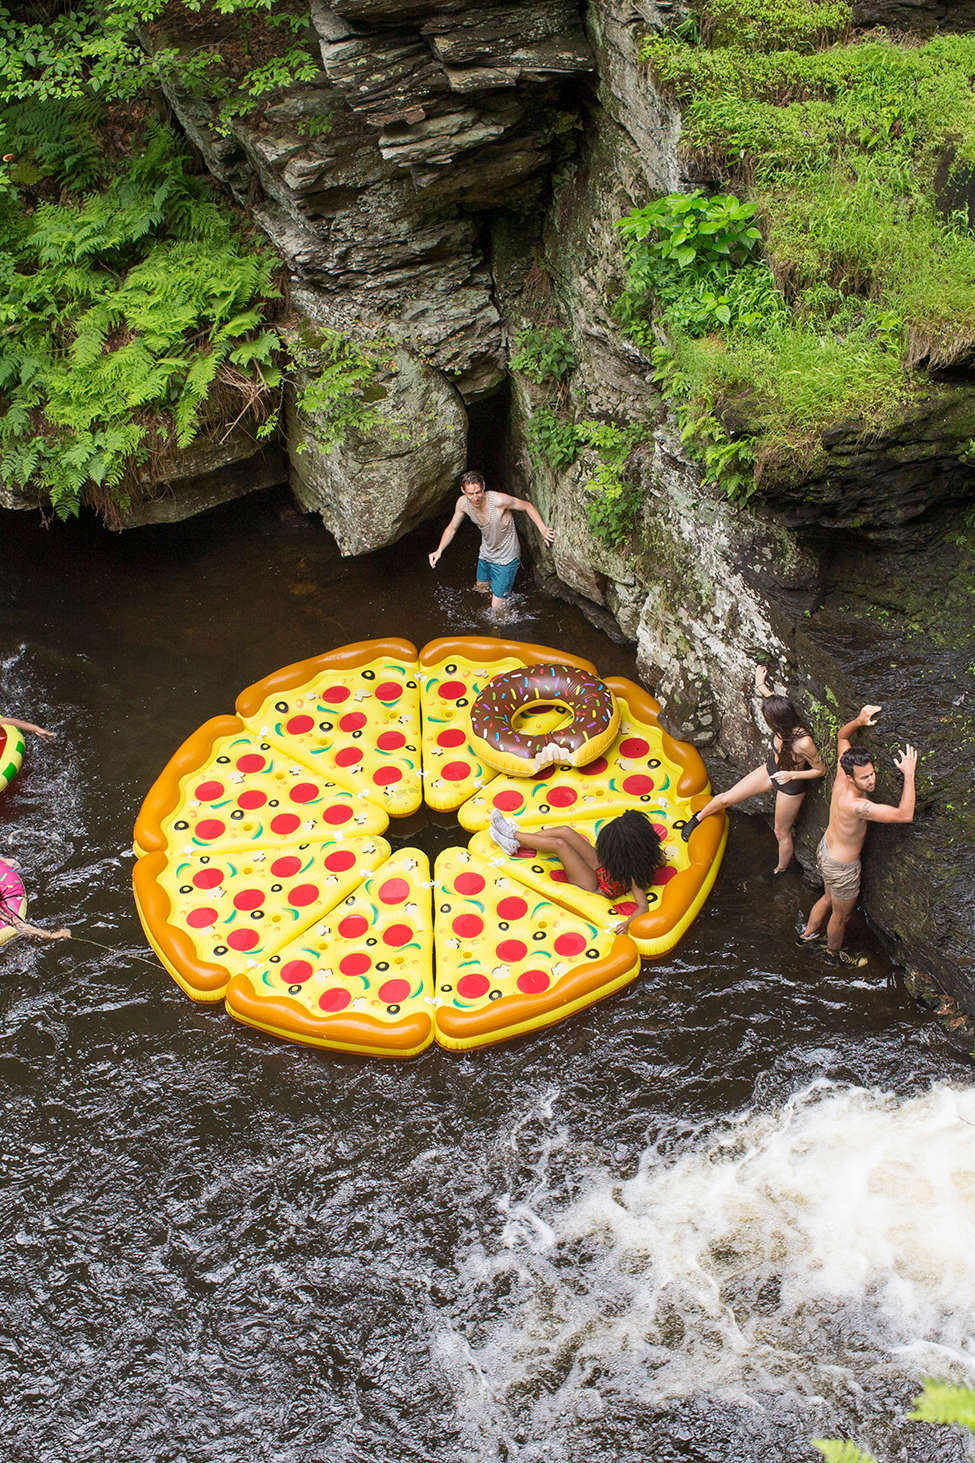 Epic pizza float - perfect for a lazy day on the lake with friends